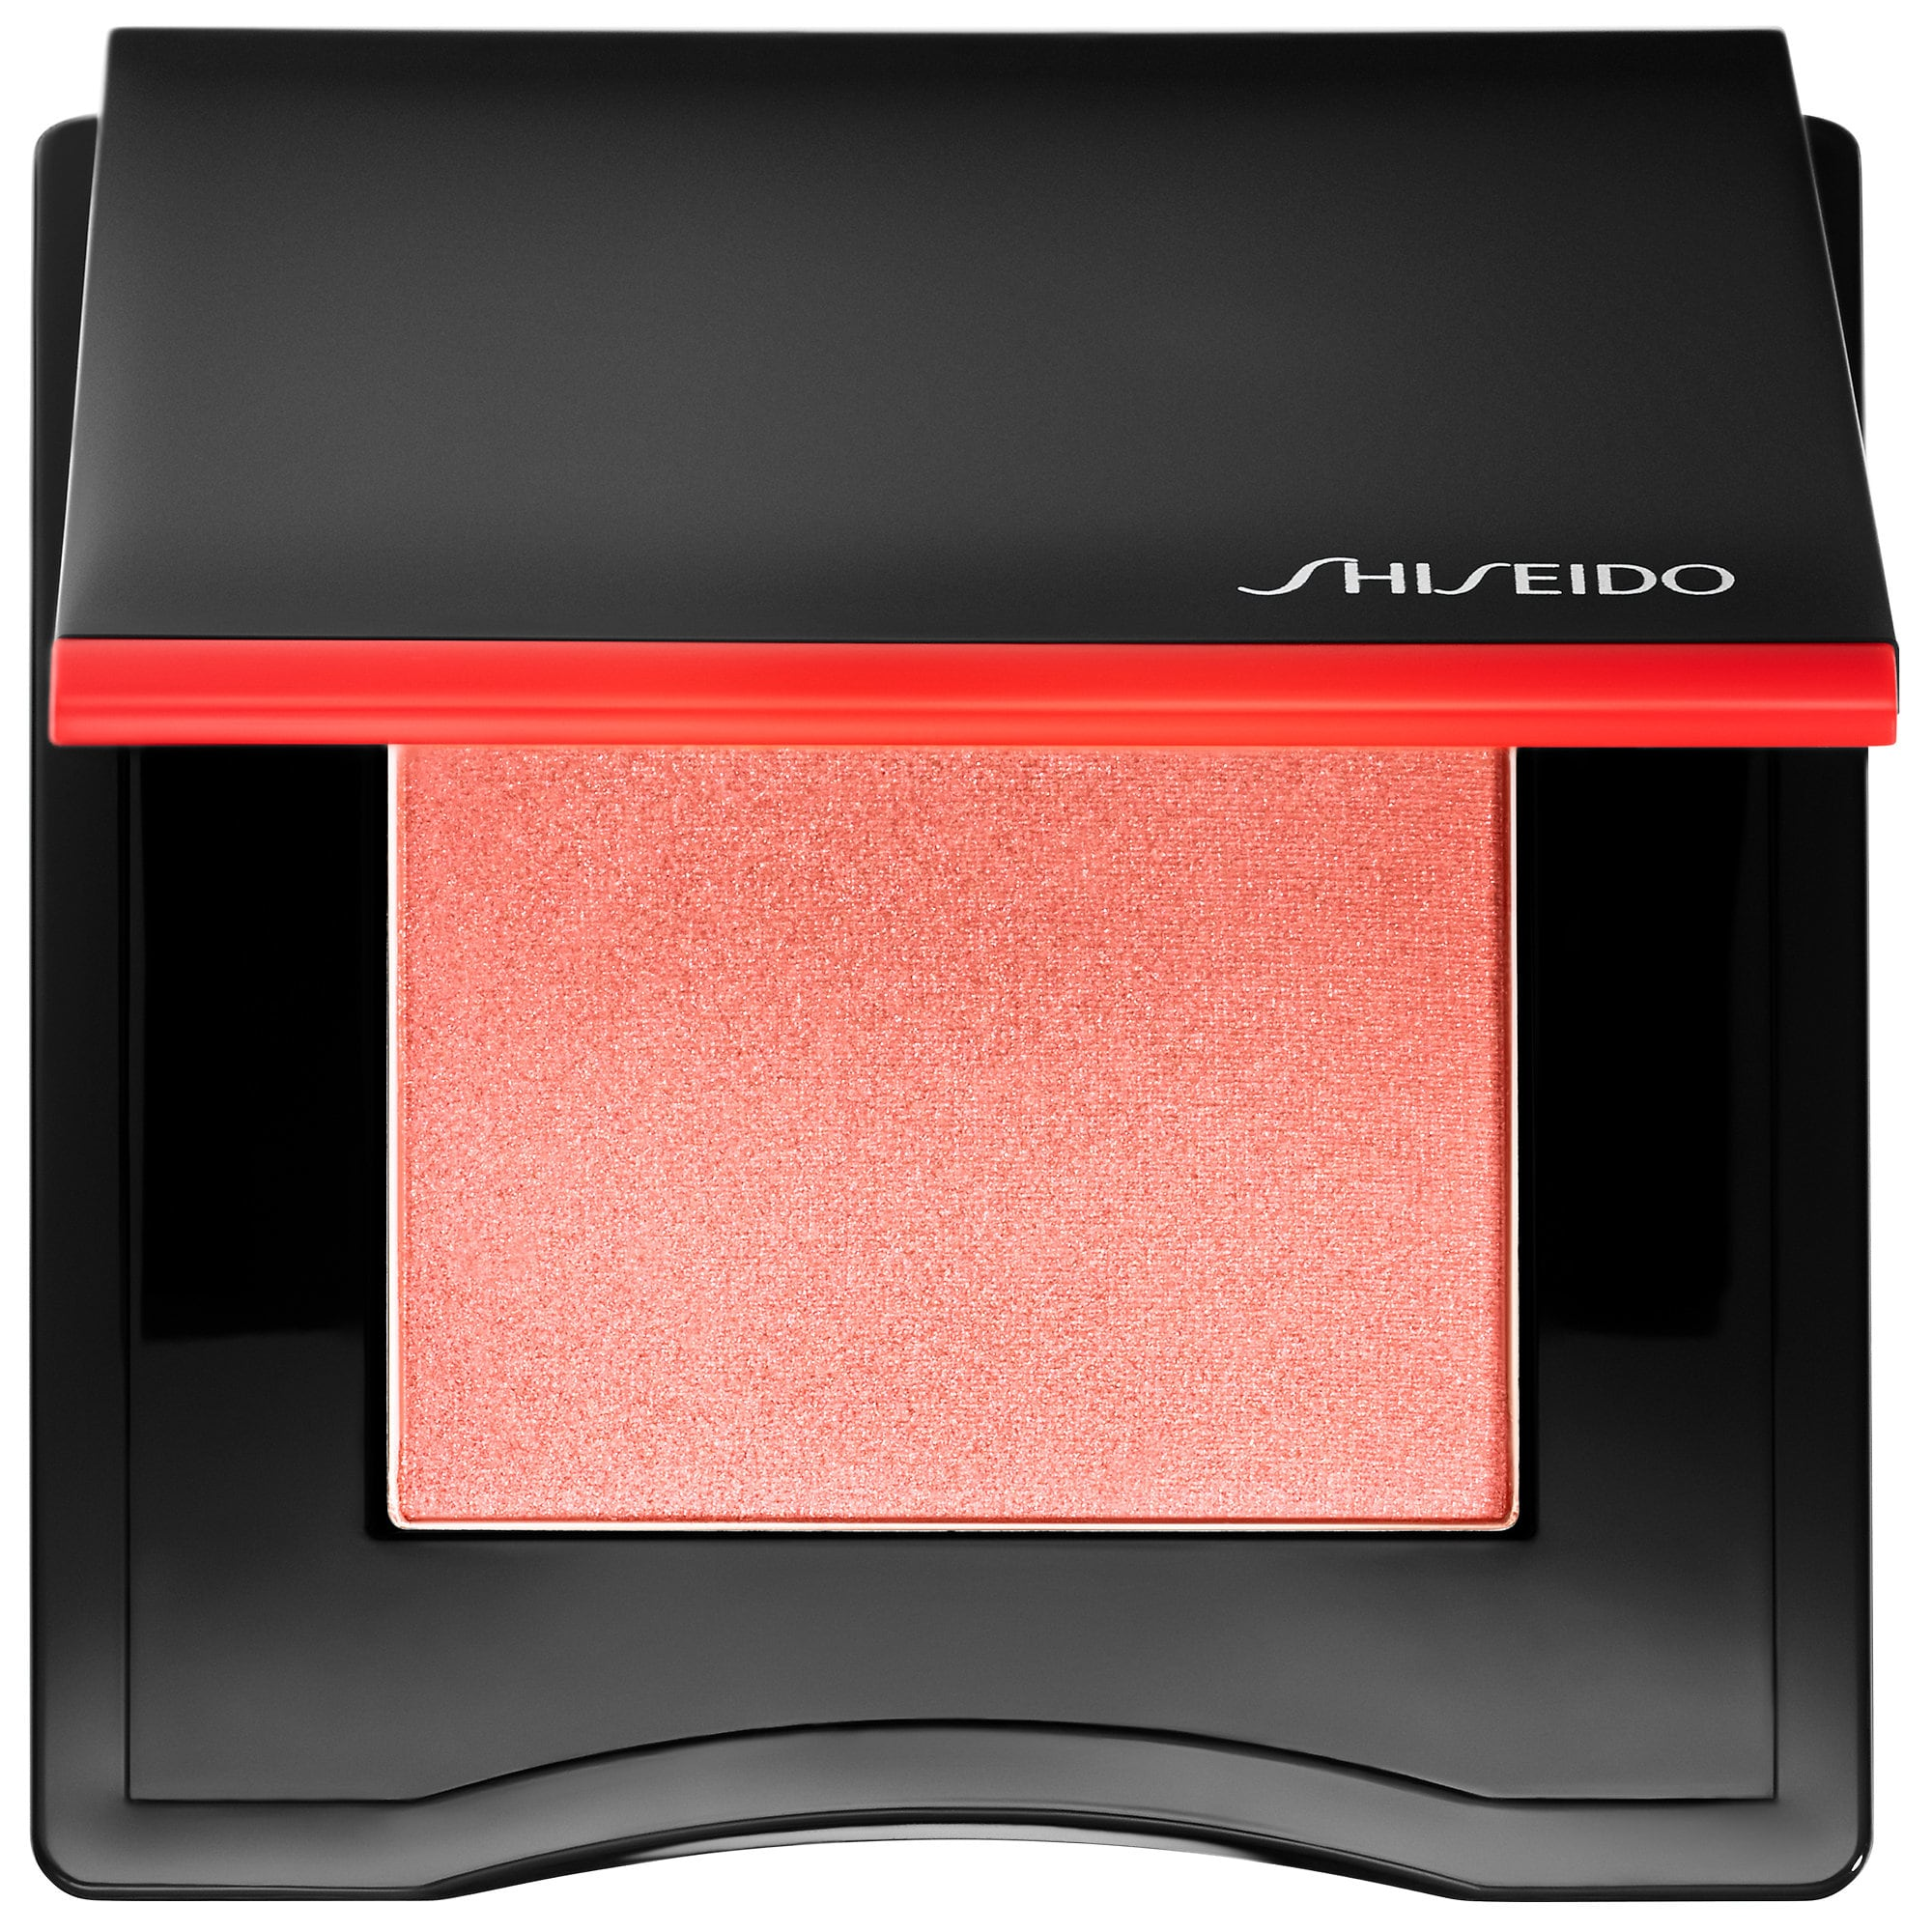 SHISEIDO-Inner-Glow-Cheek-Powder-twilight-hour-sun-kissed-blush